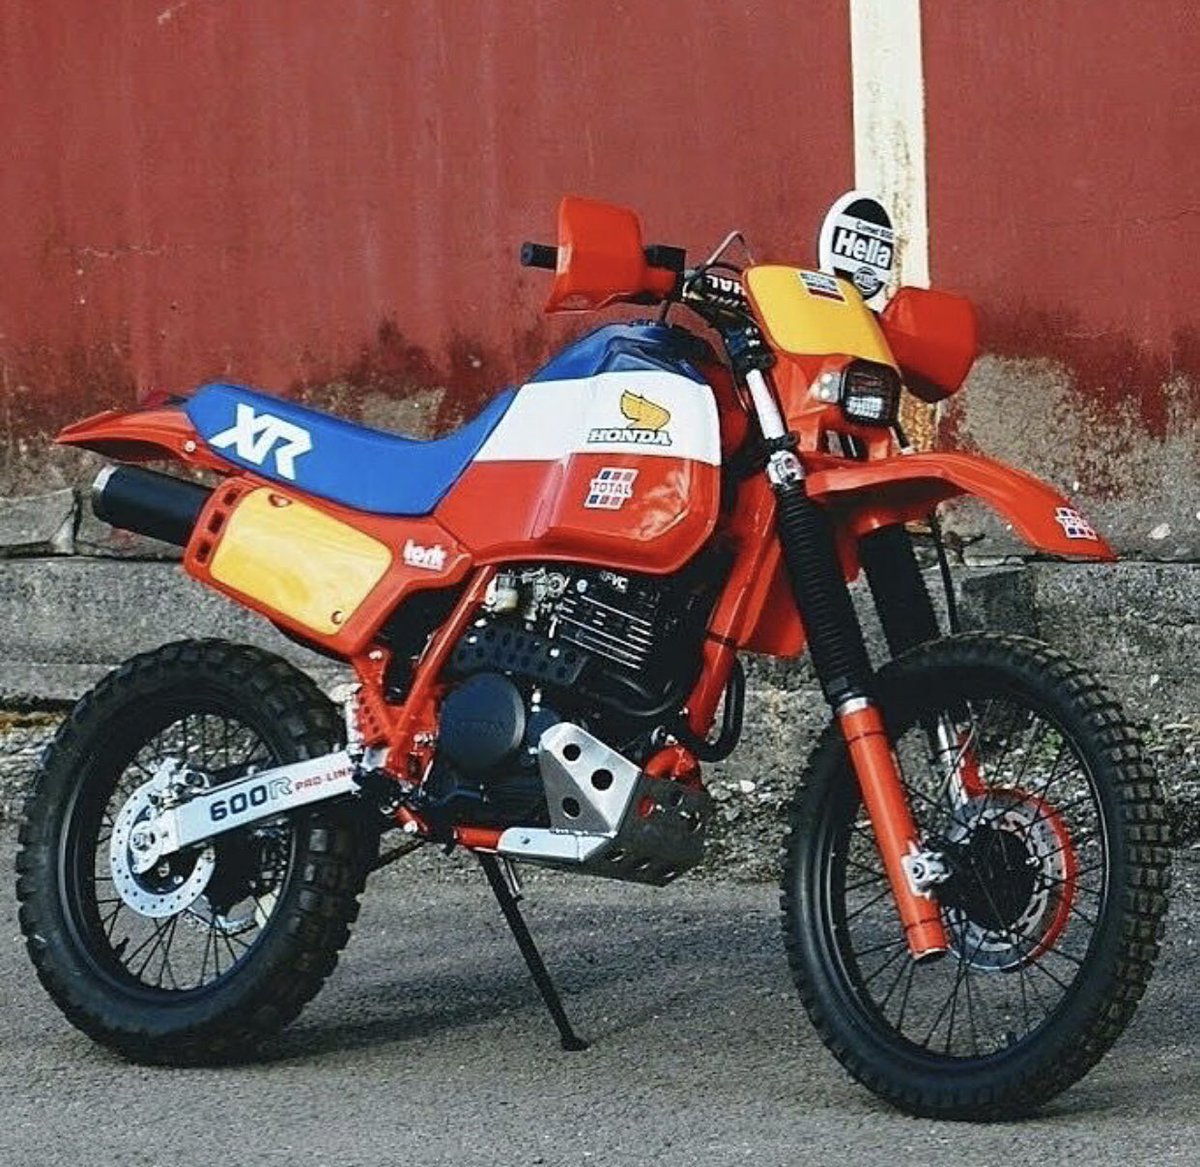 hight resolution of  xr600 hashtag on twitter